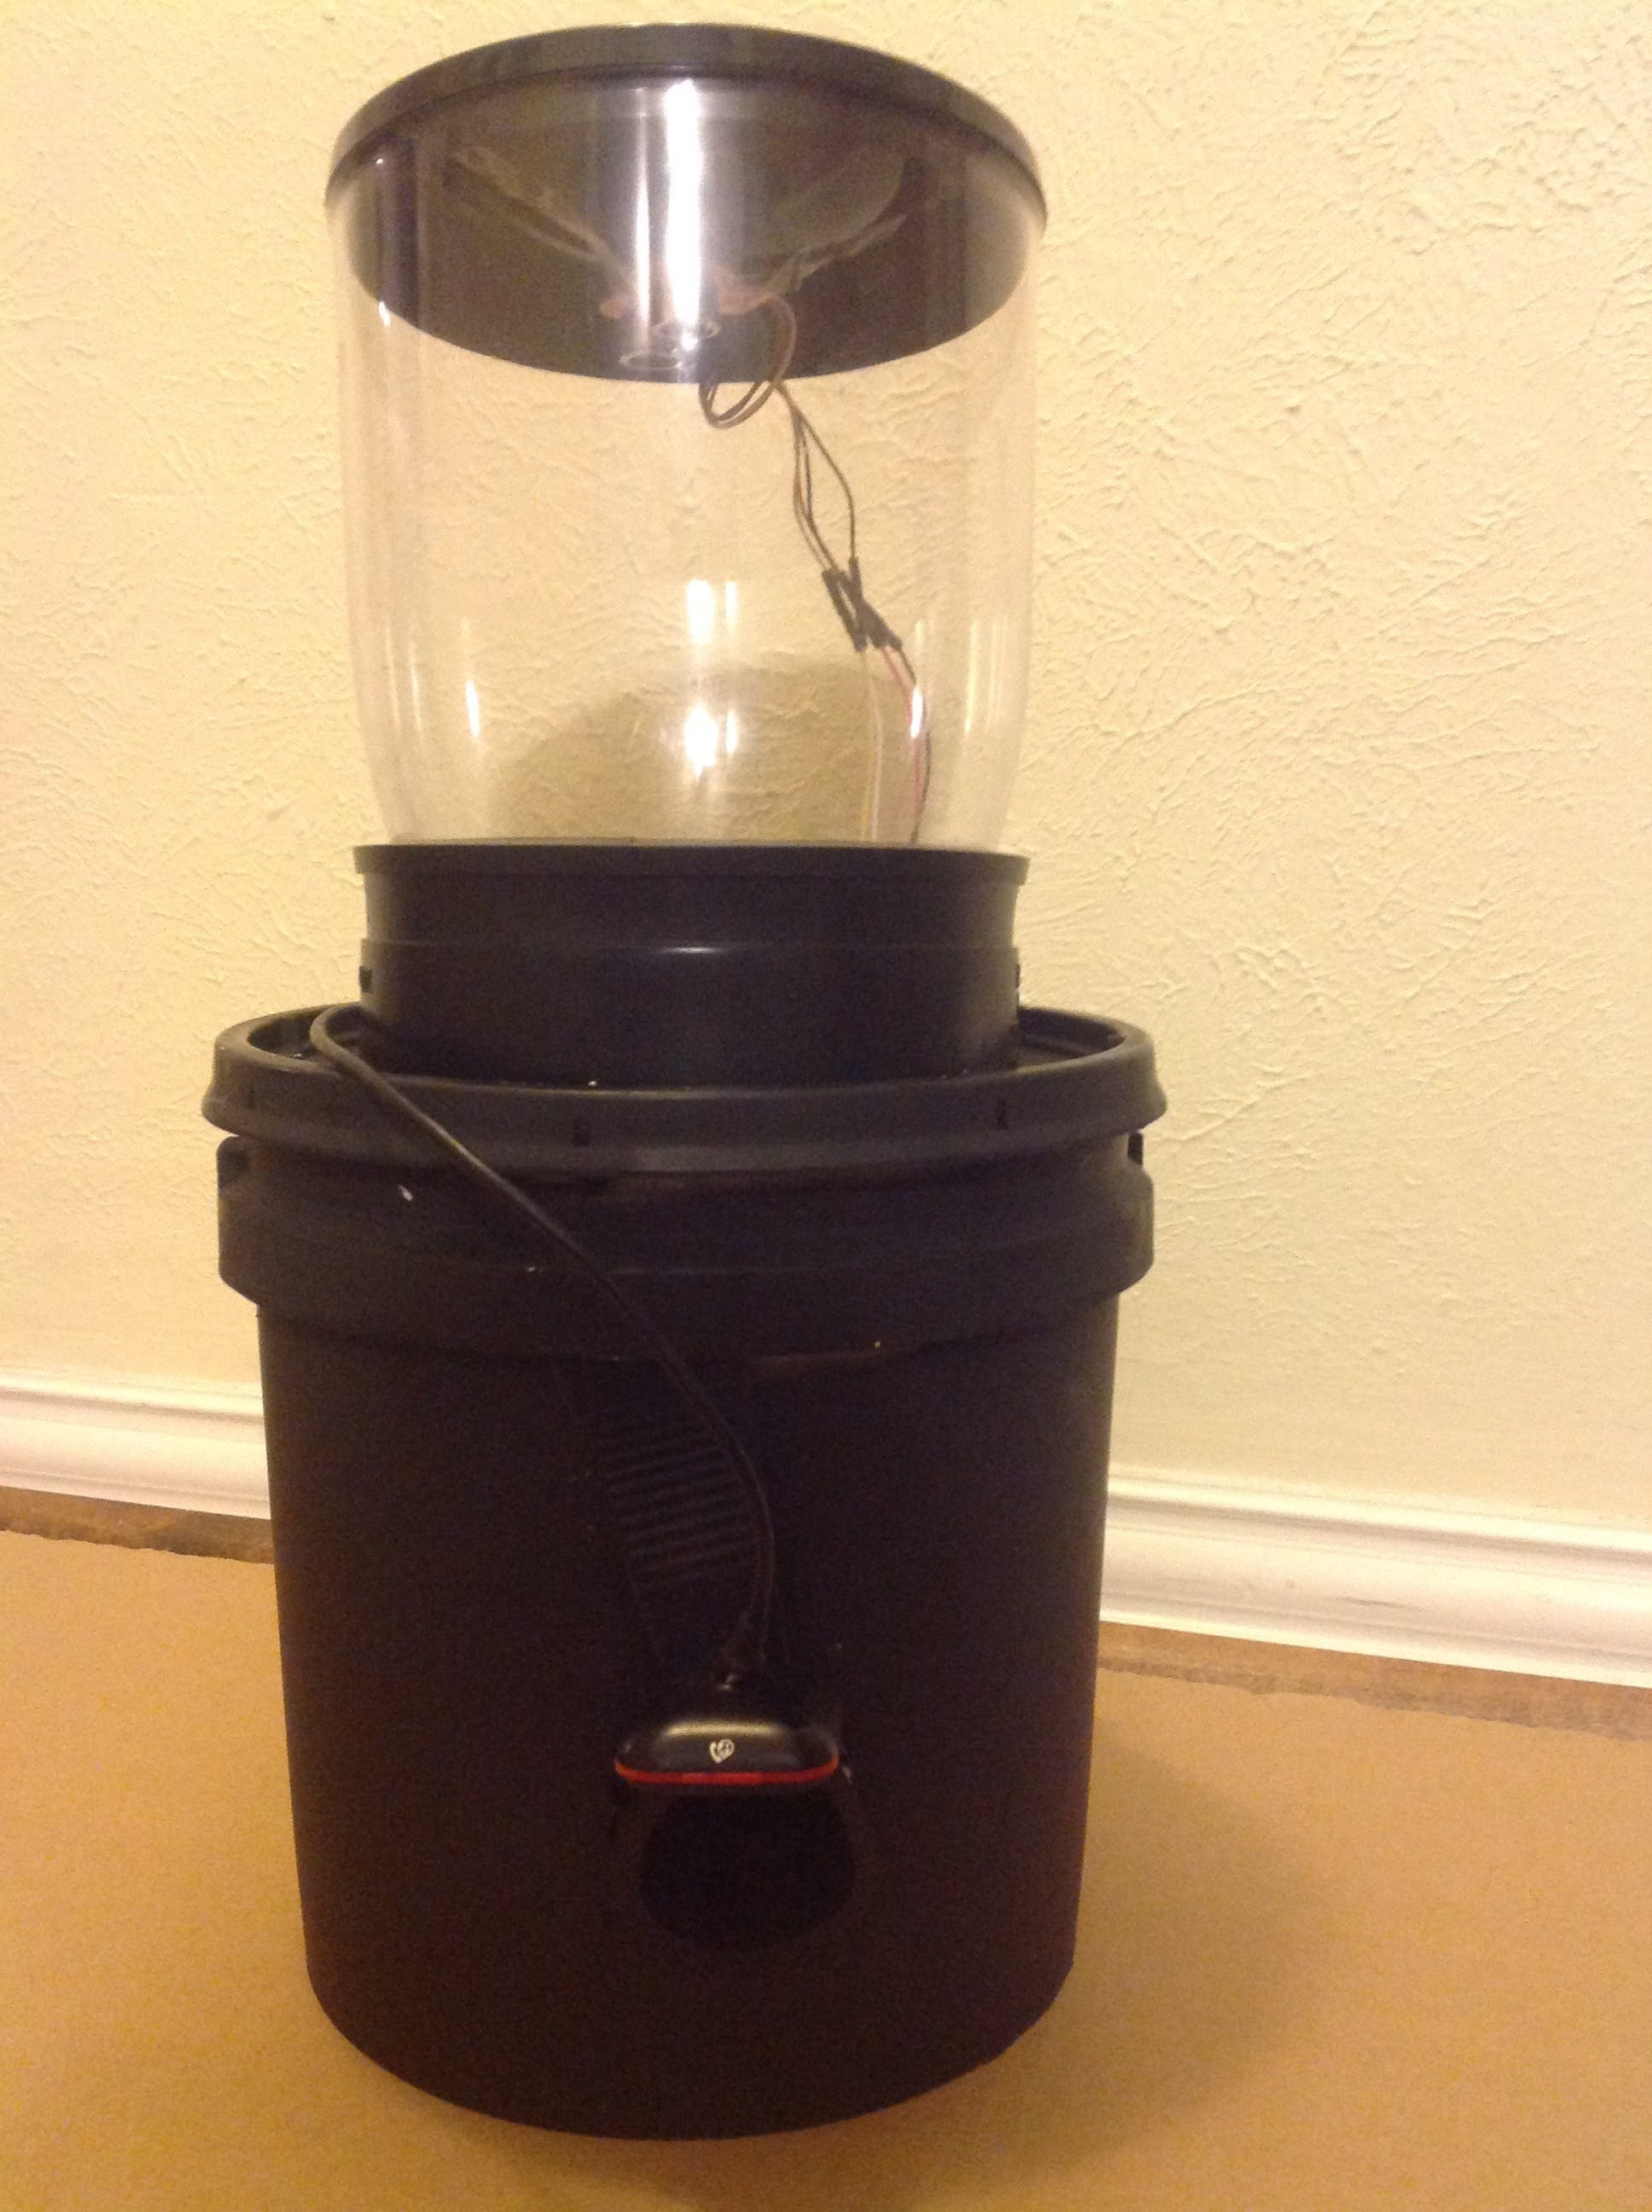 Version 2 - Improved Cat Feeder with better housing